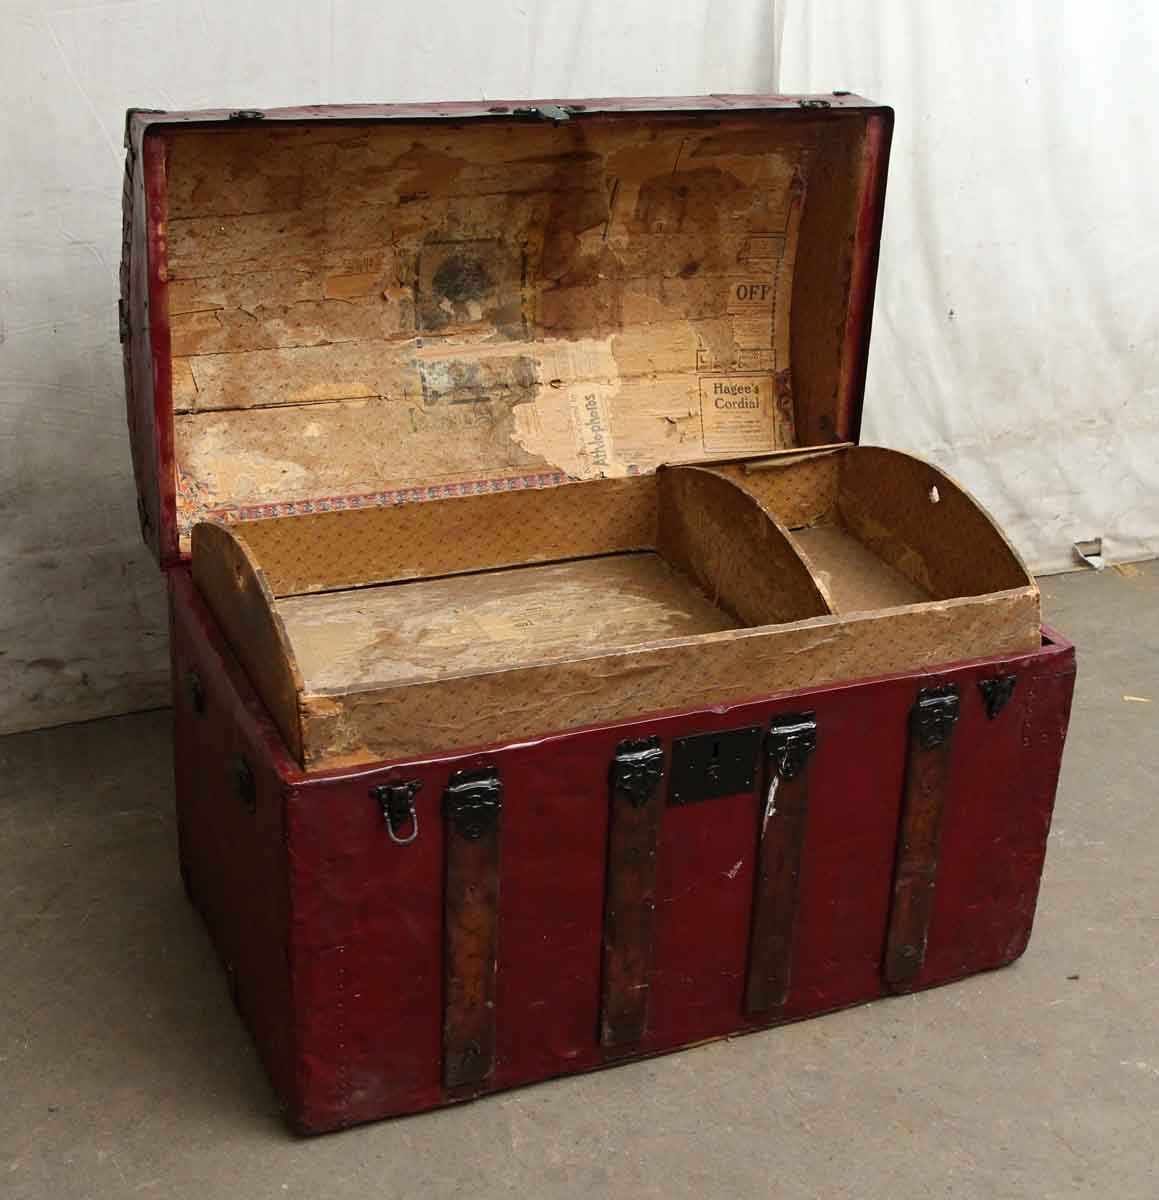 Red Vintage Storage Trunk With Ornate Hardware